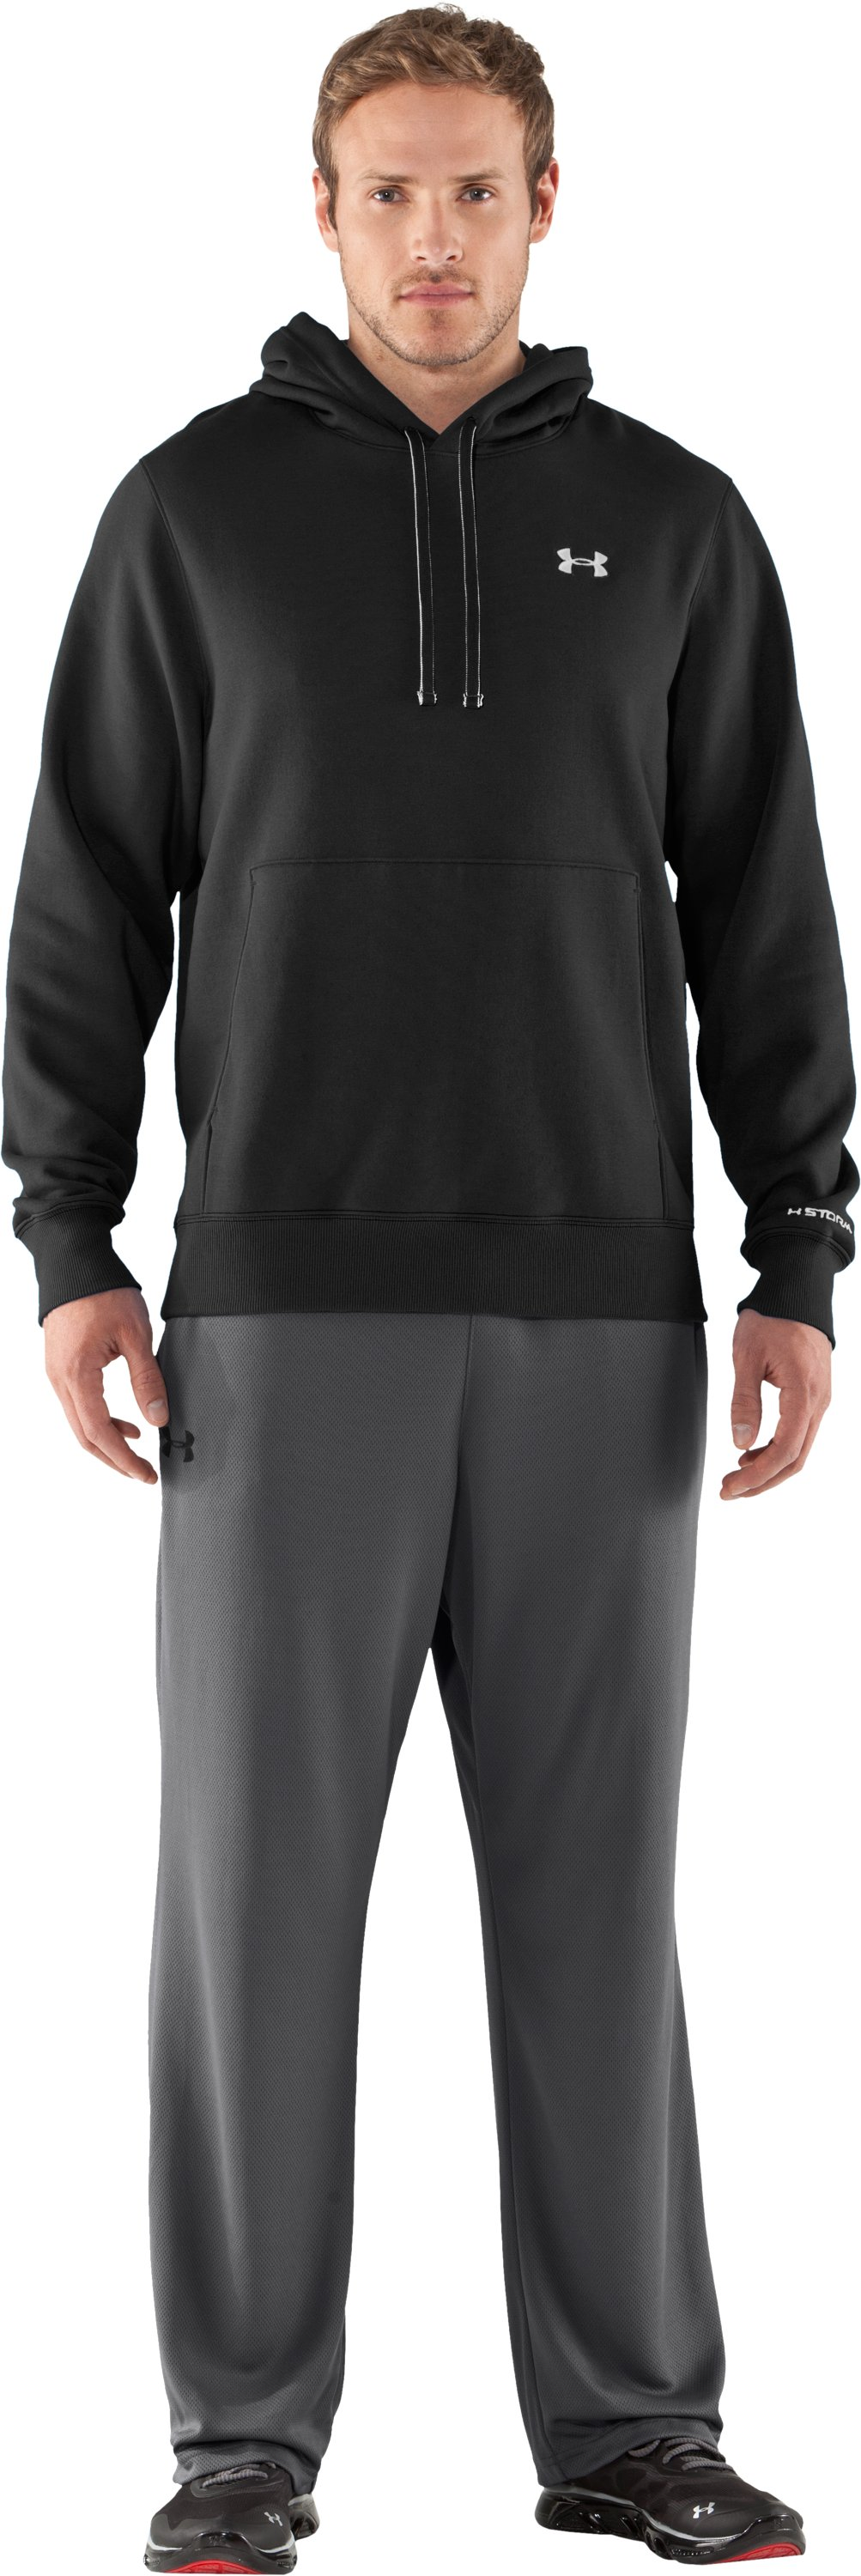 Men's Charged Cotton® Storm Transit Hoodie, Black